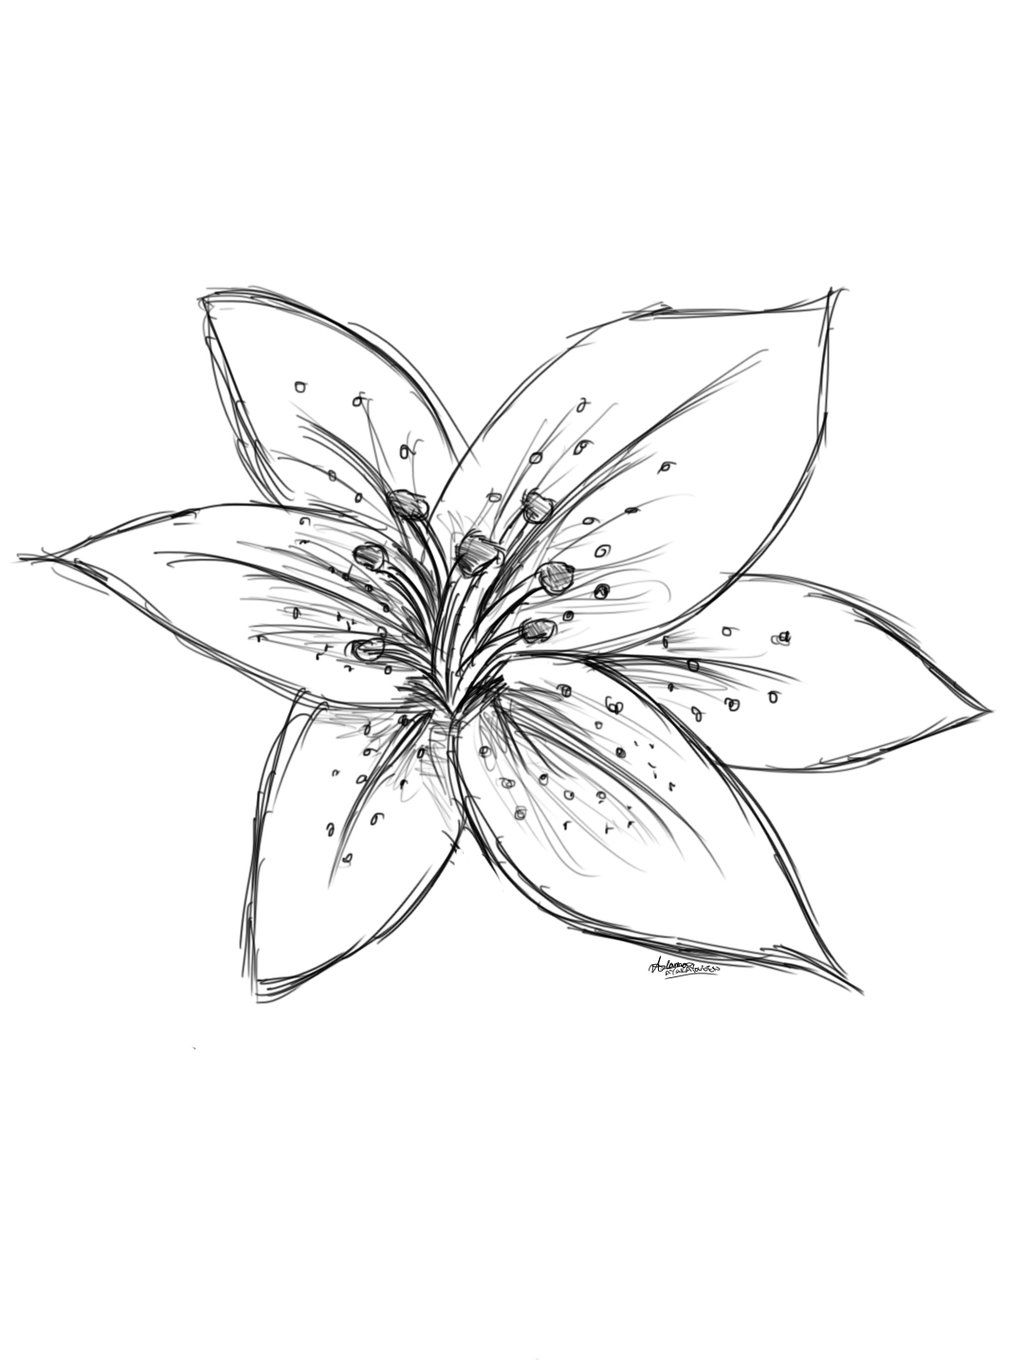 Drawn lily Lilies Google Search Search Drawings